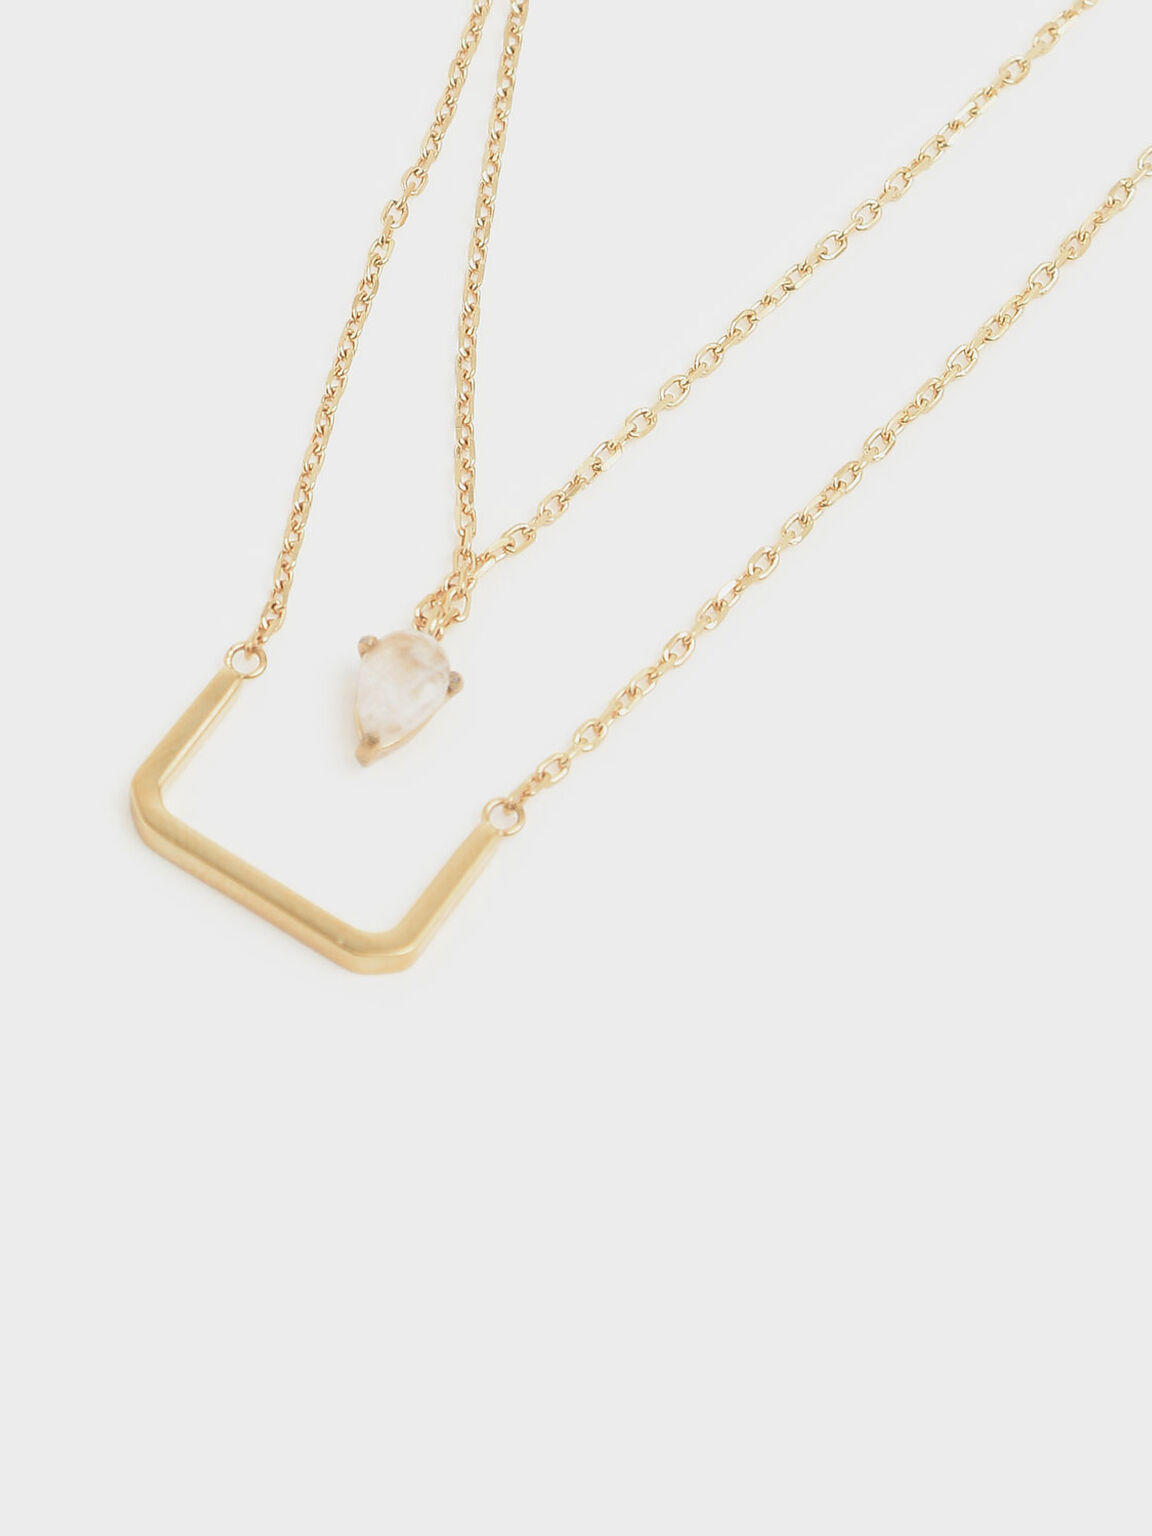 Moonstone Layered Matinee Necklace, Gold, hi-res